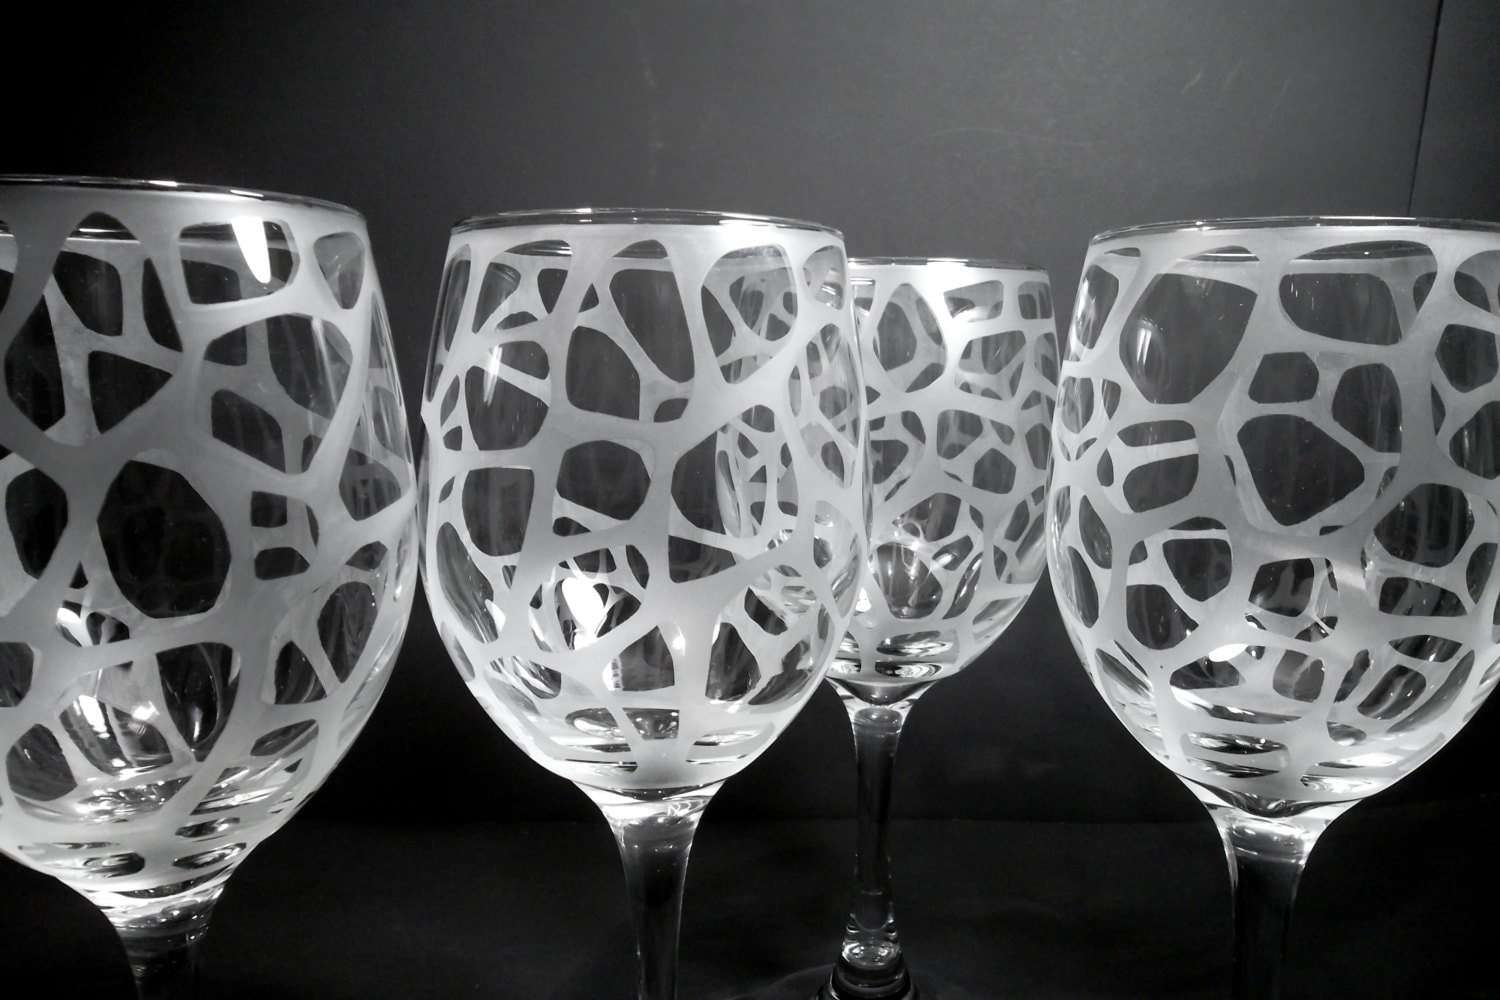 Etched Wine Glasses Wedding Gifts : Etched wine glasses. Set of 4. Wedding gift bridesmaid gift